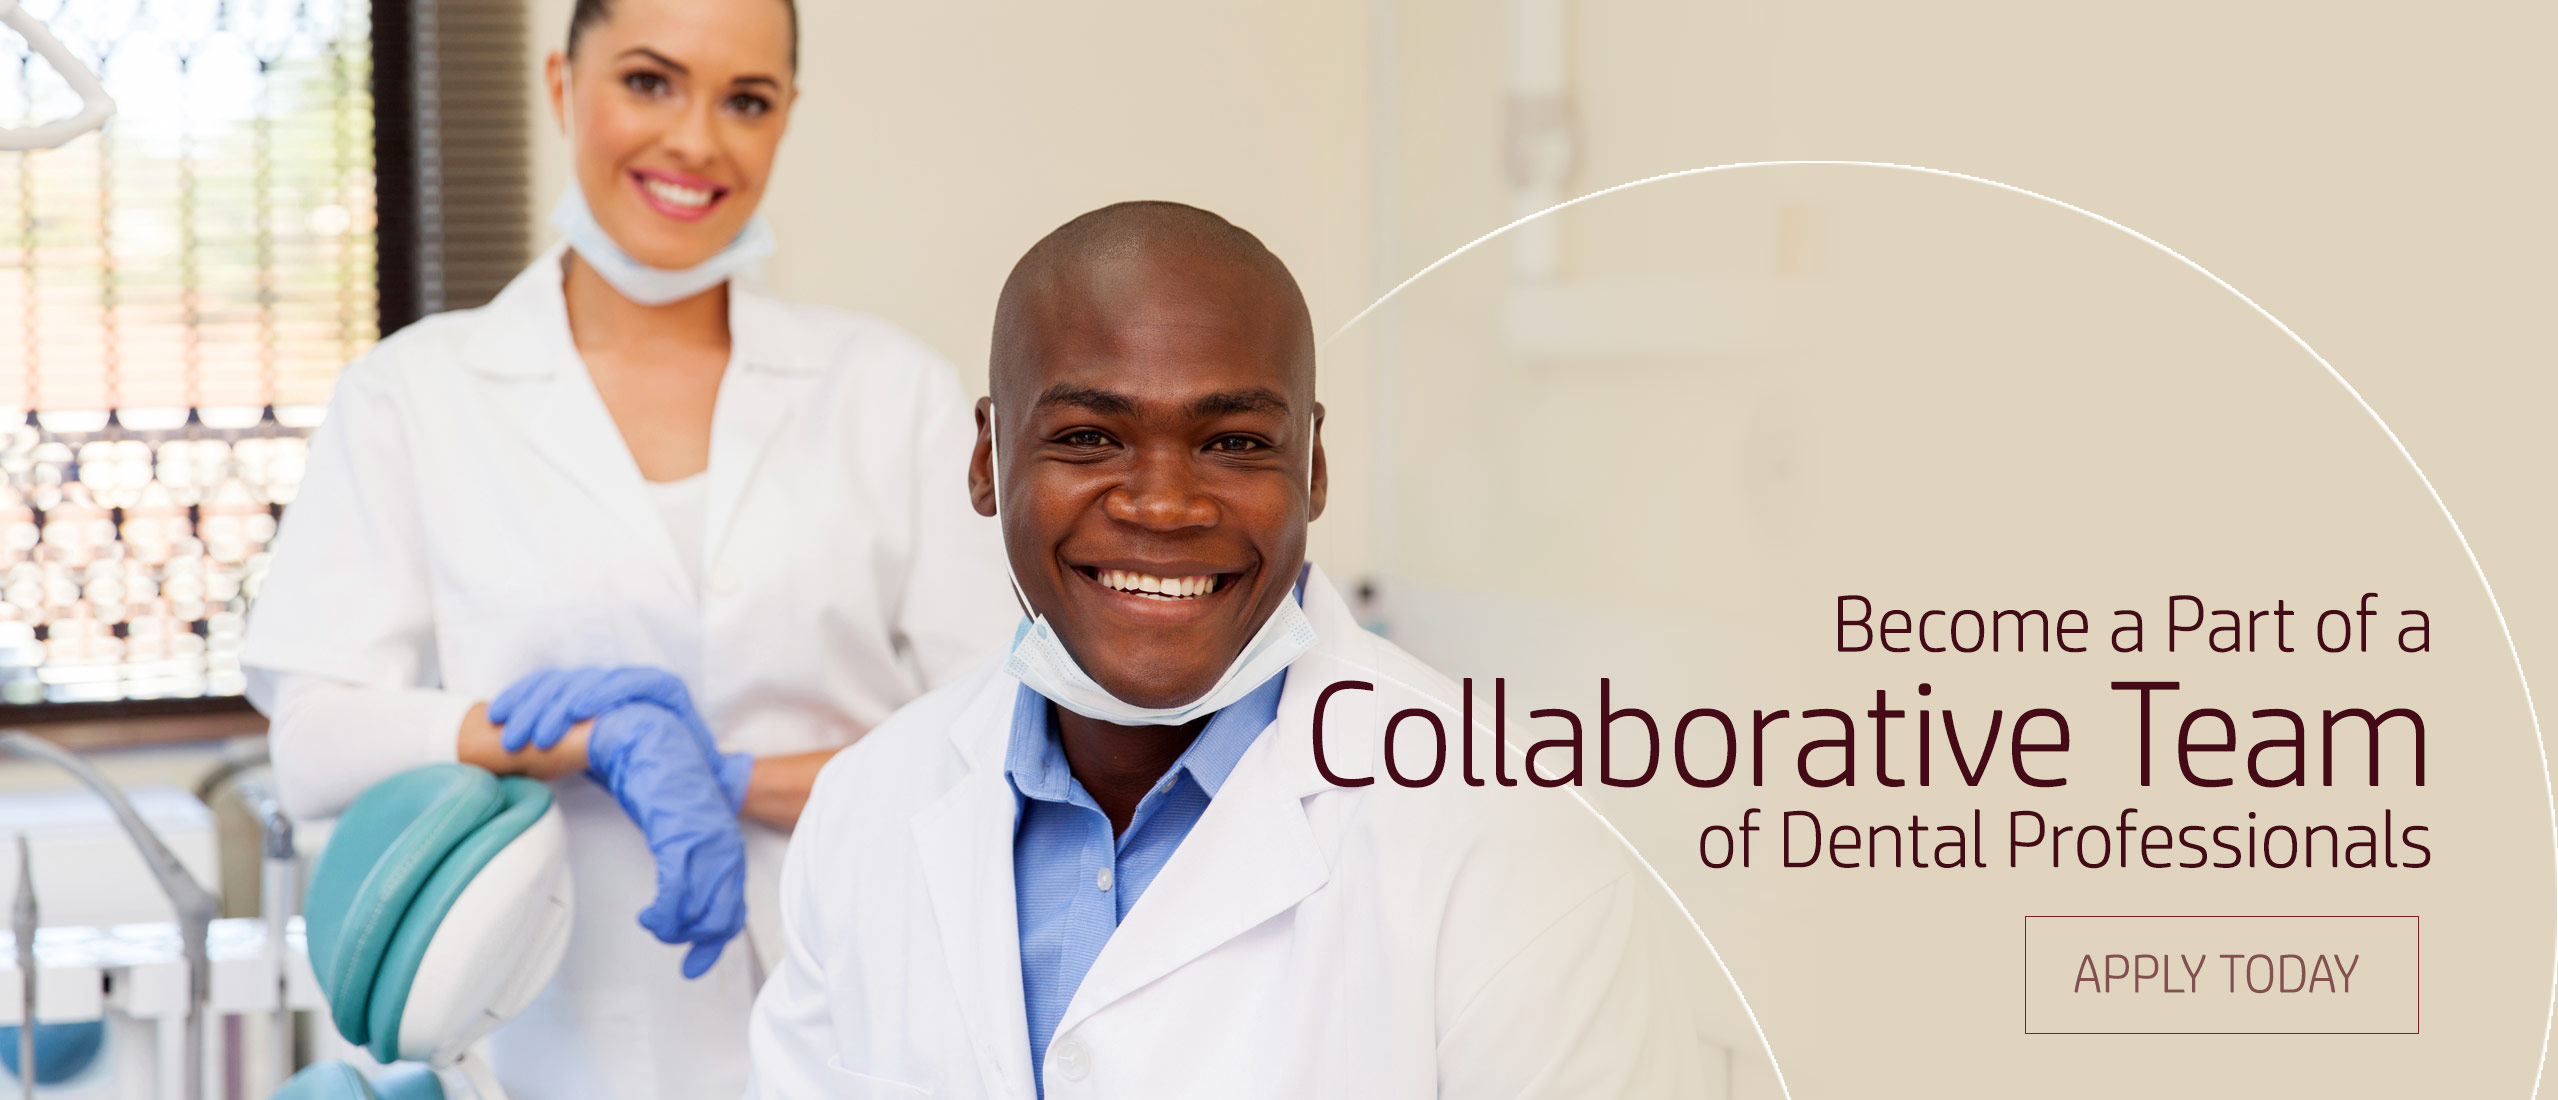 collaborative-team-of-dental-professionals